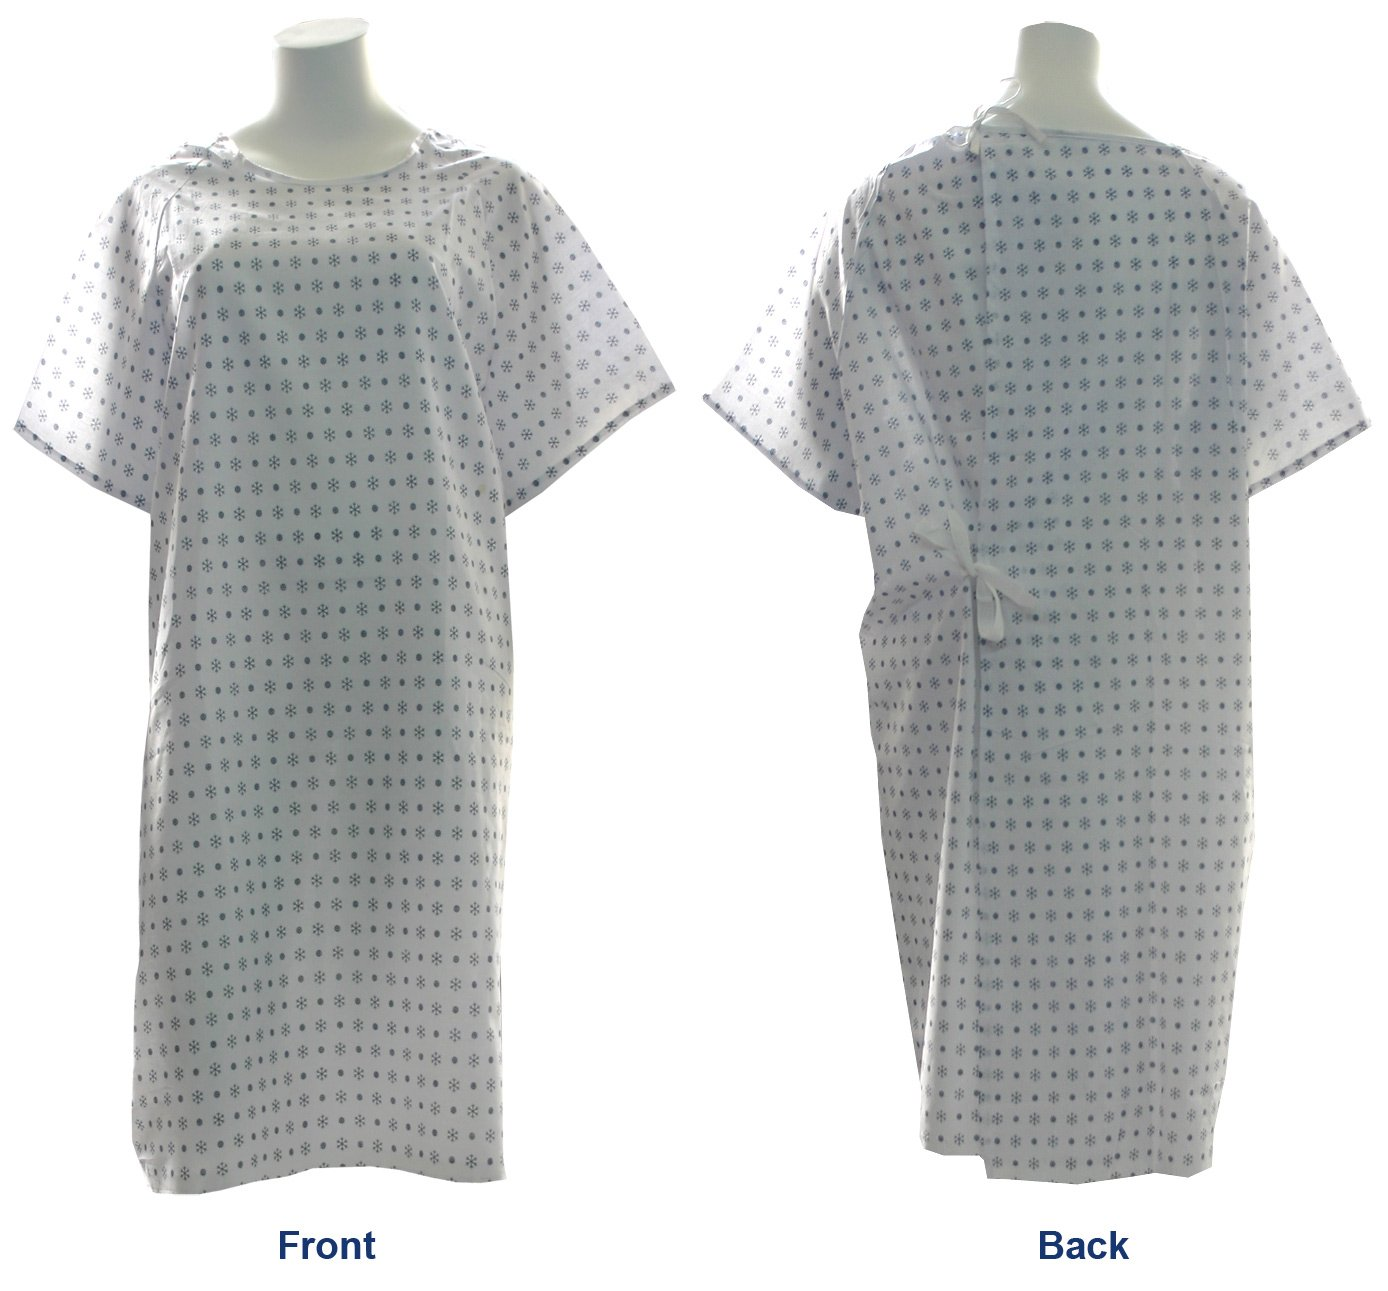 Amazon.com: Snowflake Print Hospital Medical Gowns - Pack of 4 ...